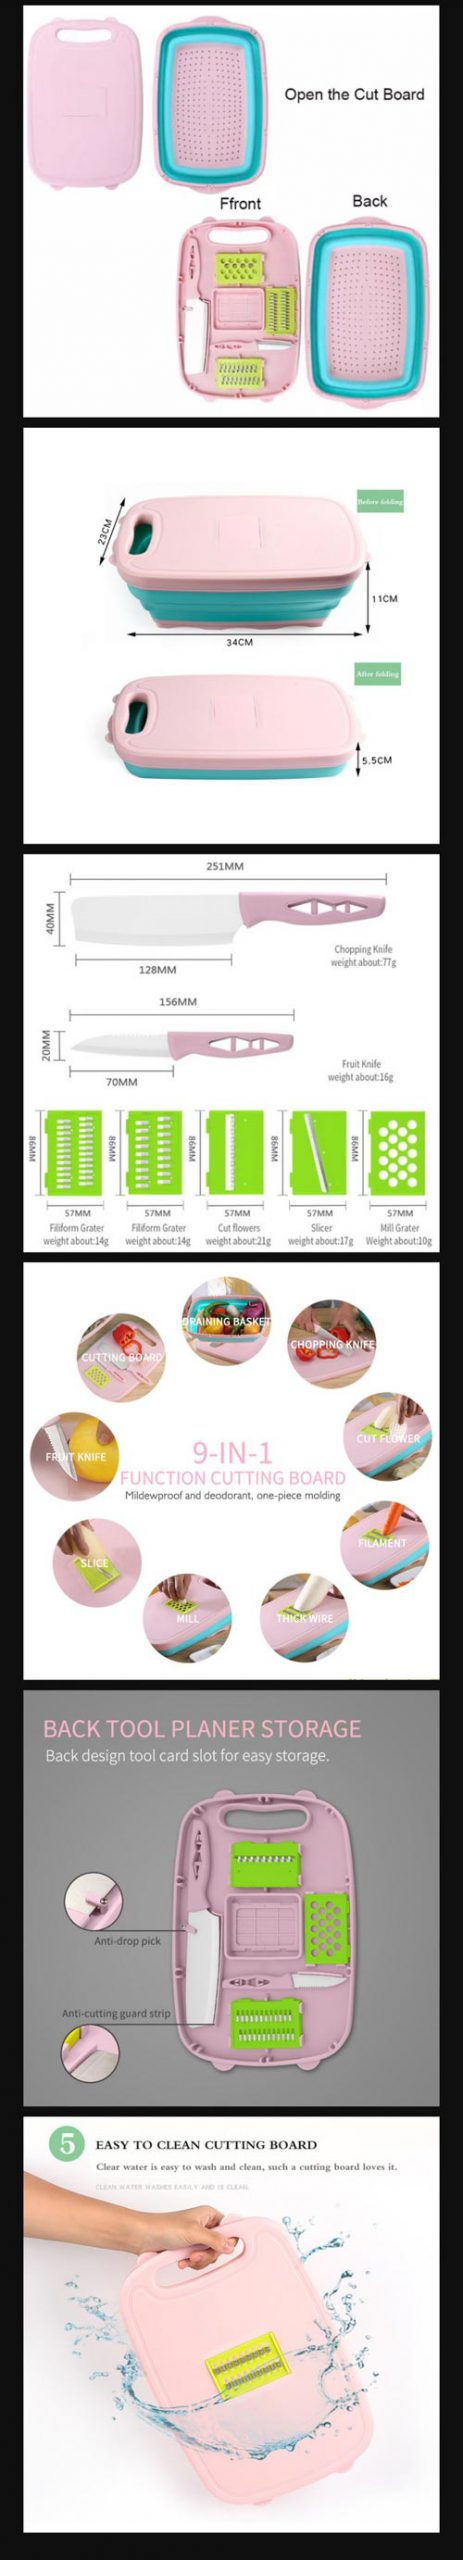 9 in 1 Multi Functional Cutting Board In Pakistan